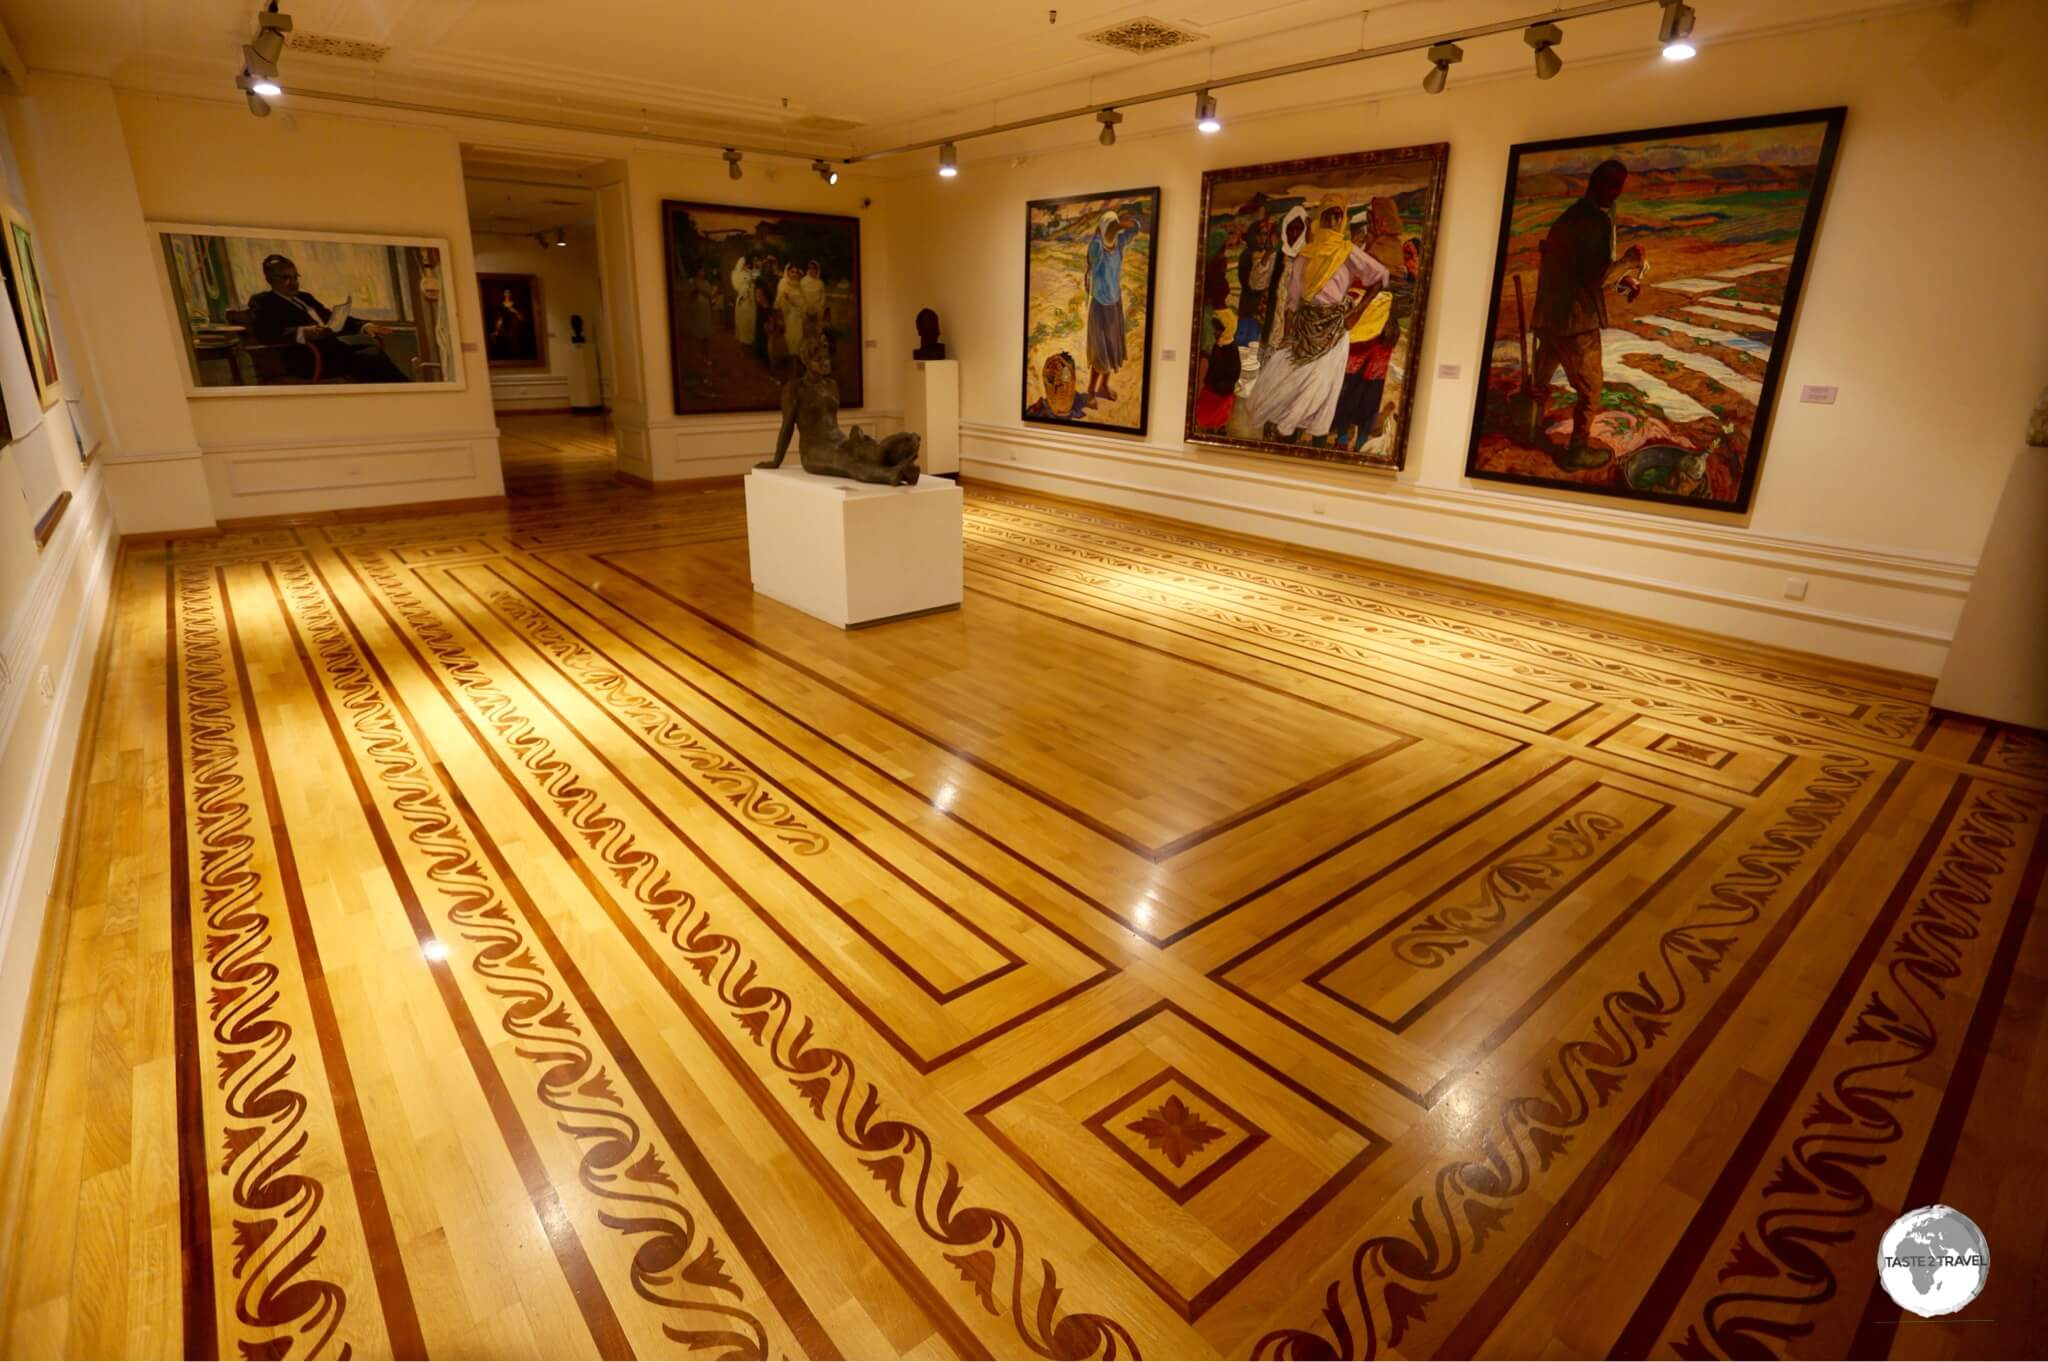 Each of the 60 rooms of the Art Museum feature incredible parquet flooring.